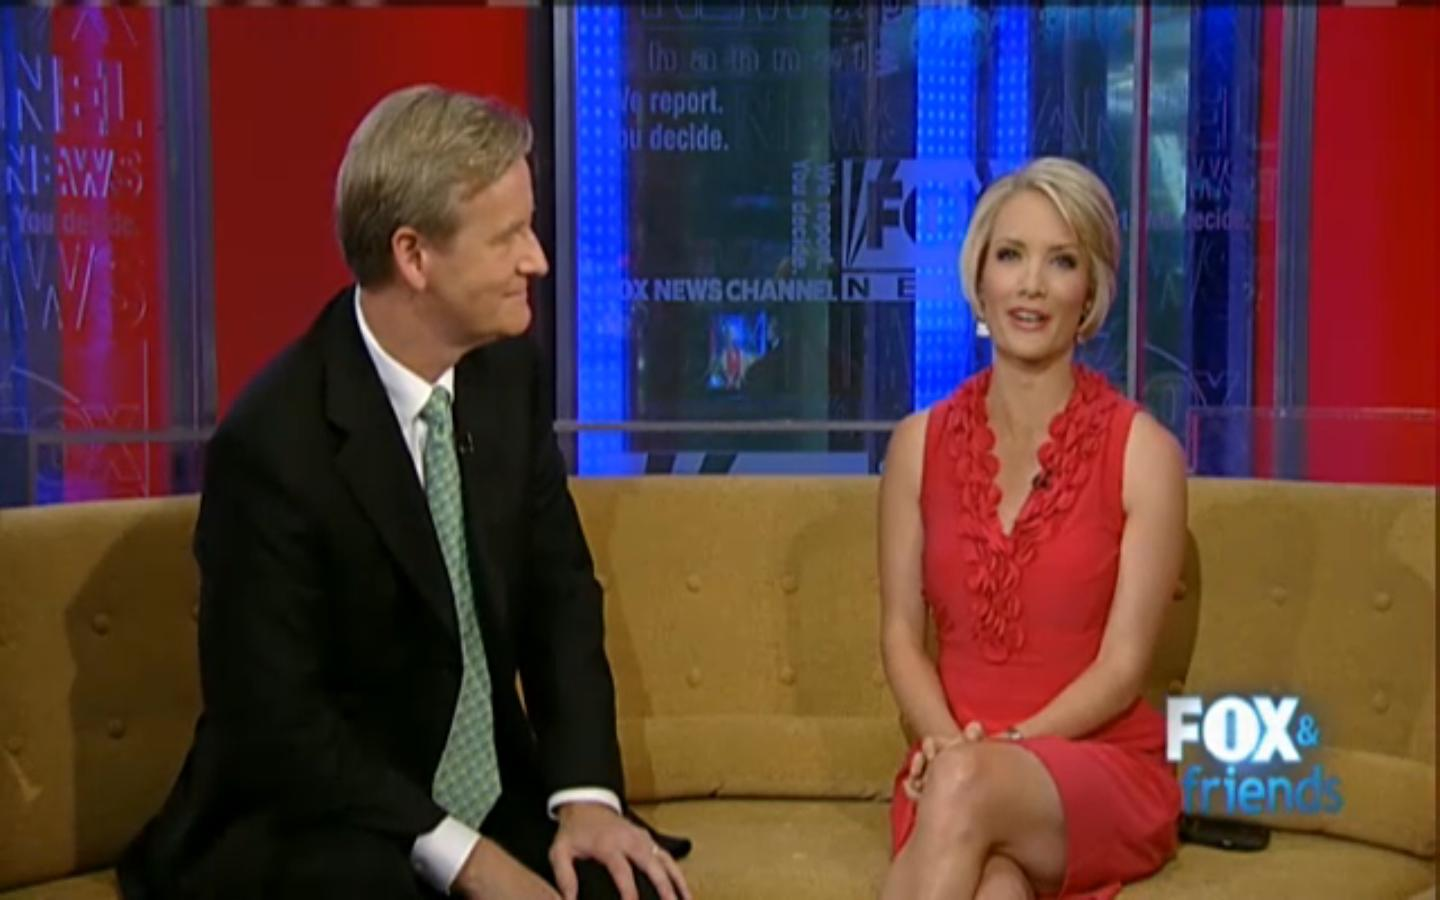 Dana Perino In A Swimsuit http://reporter101.blogspot.com/2010/06/2nd-week-of-june-alisyn-camerota-and.html